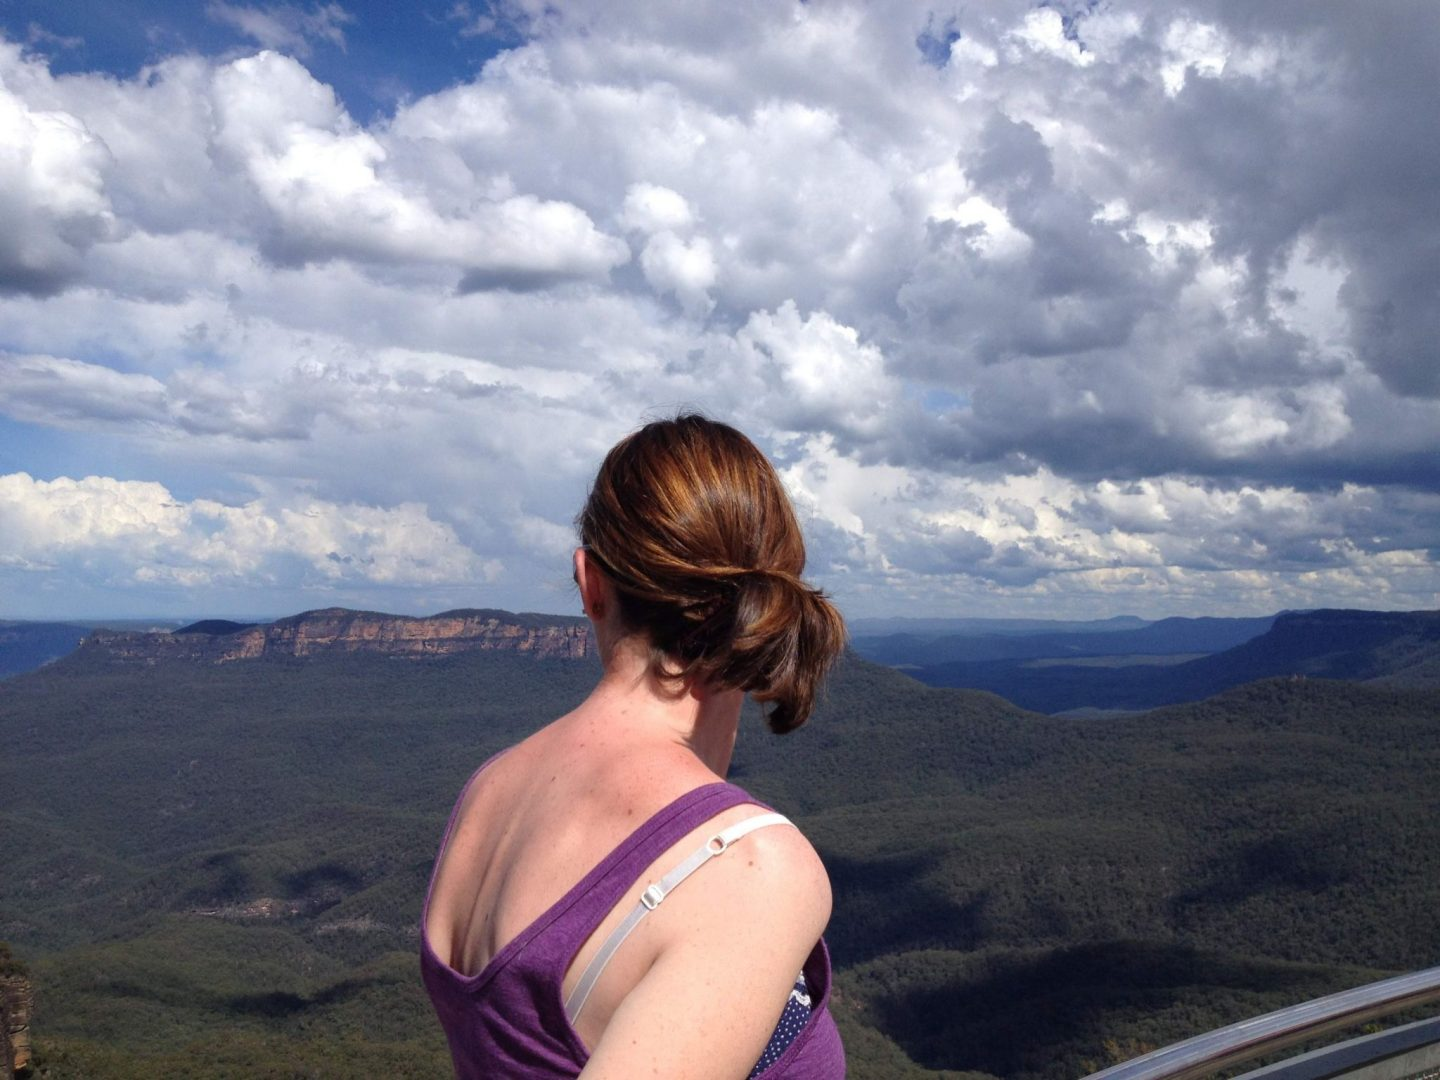 Looking out at the Blue Mountains, New South Wales